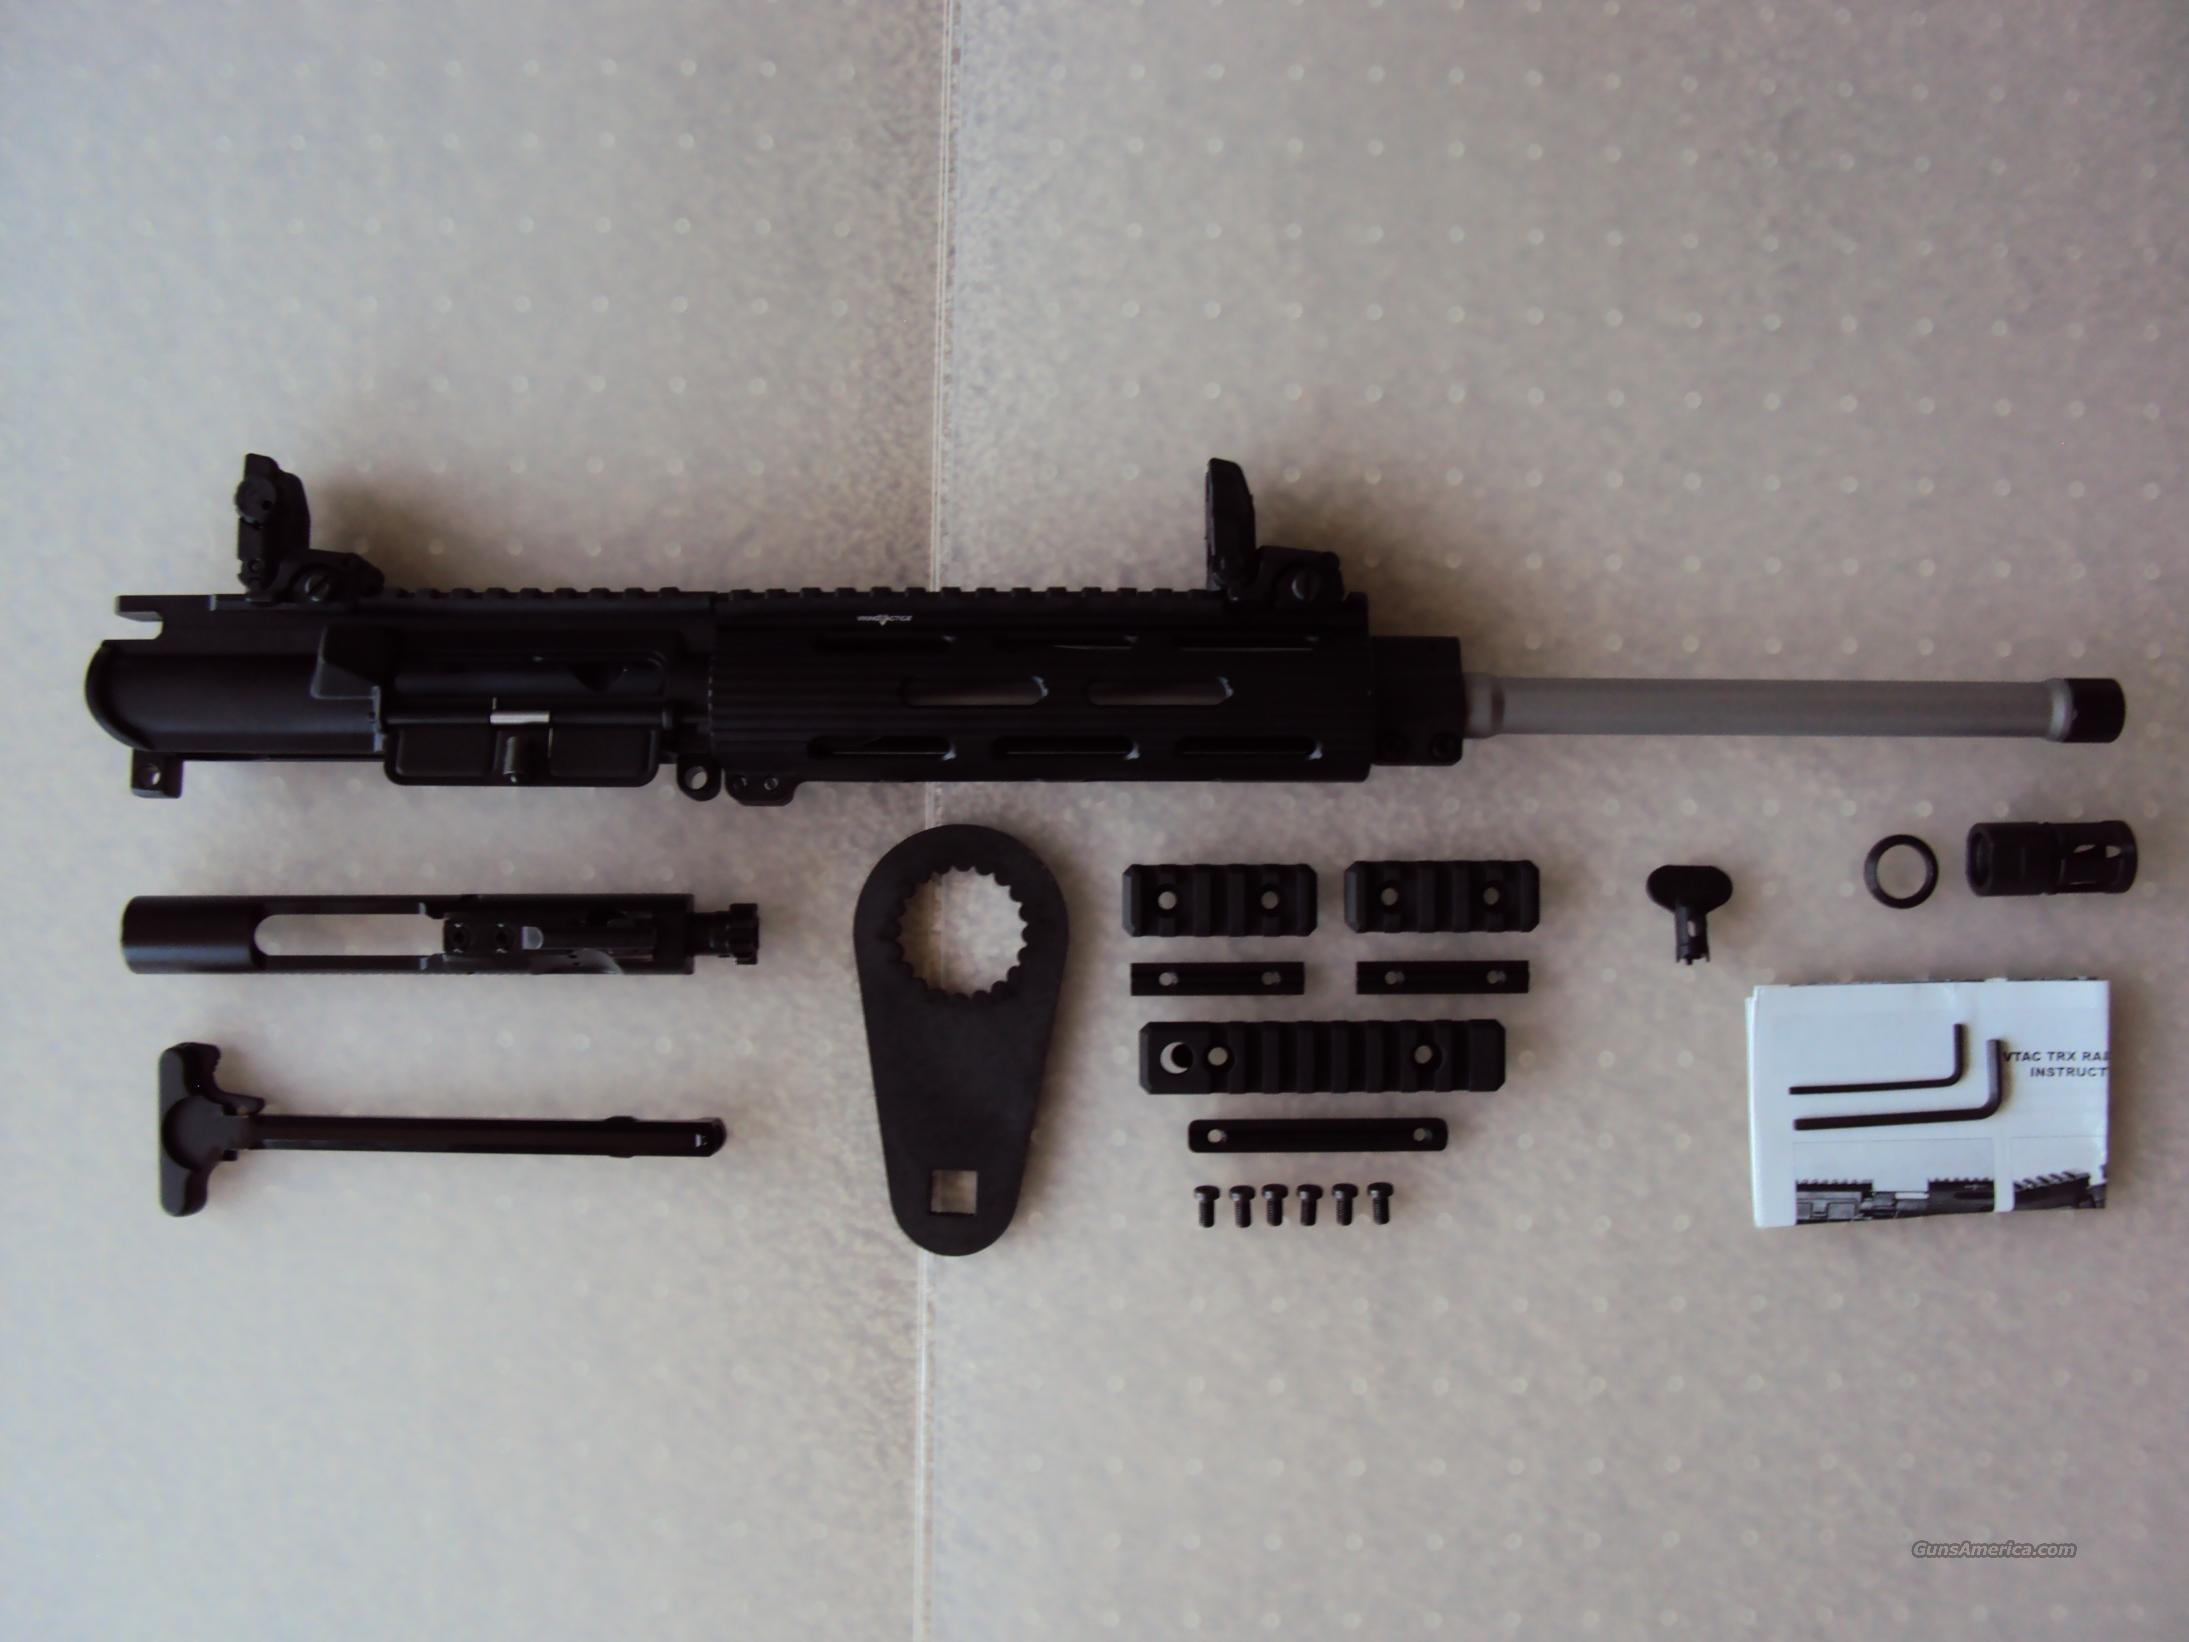 AR-15 .300 AAC Blackout Custom Super Lightweight Upper Receiver AR15  Non-Guns > Gun Parts > M16-AR15